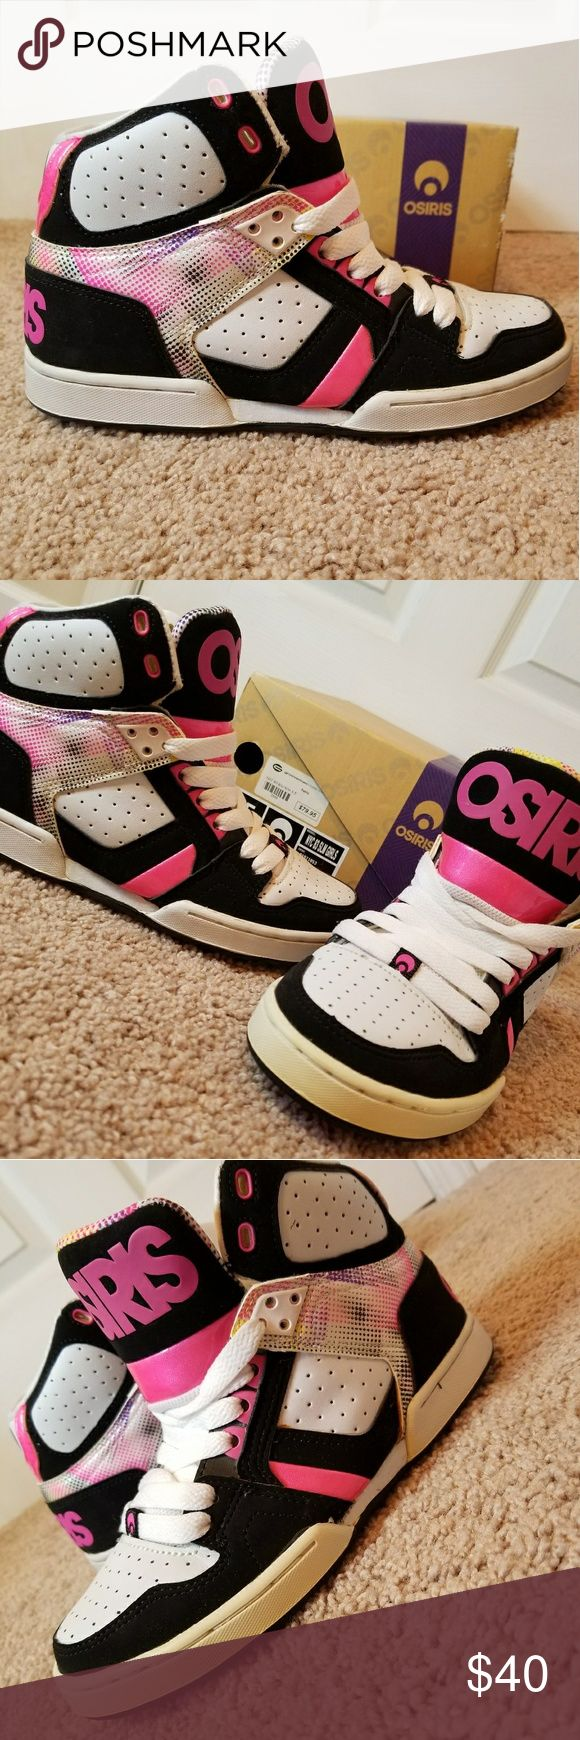 Osiris High Top Sneakers Pre - Owned OSIRIS skater high top sneakers. Great bright colors including hot pink, black, yellow & purple. Only worn a few times, but have become slightly yellow in one area of the outer bottom rim due to always being put back in the box. Still a great pair of sneakers. Very comfortable Osiris Shoes Sneakers